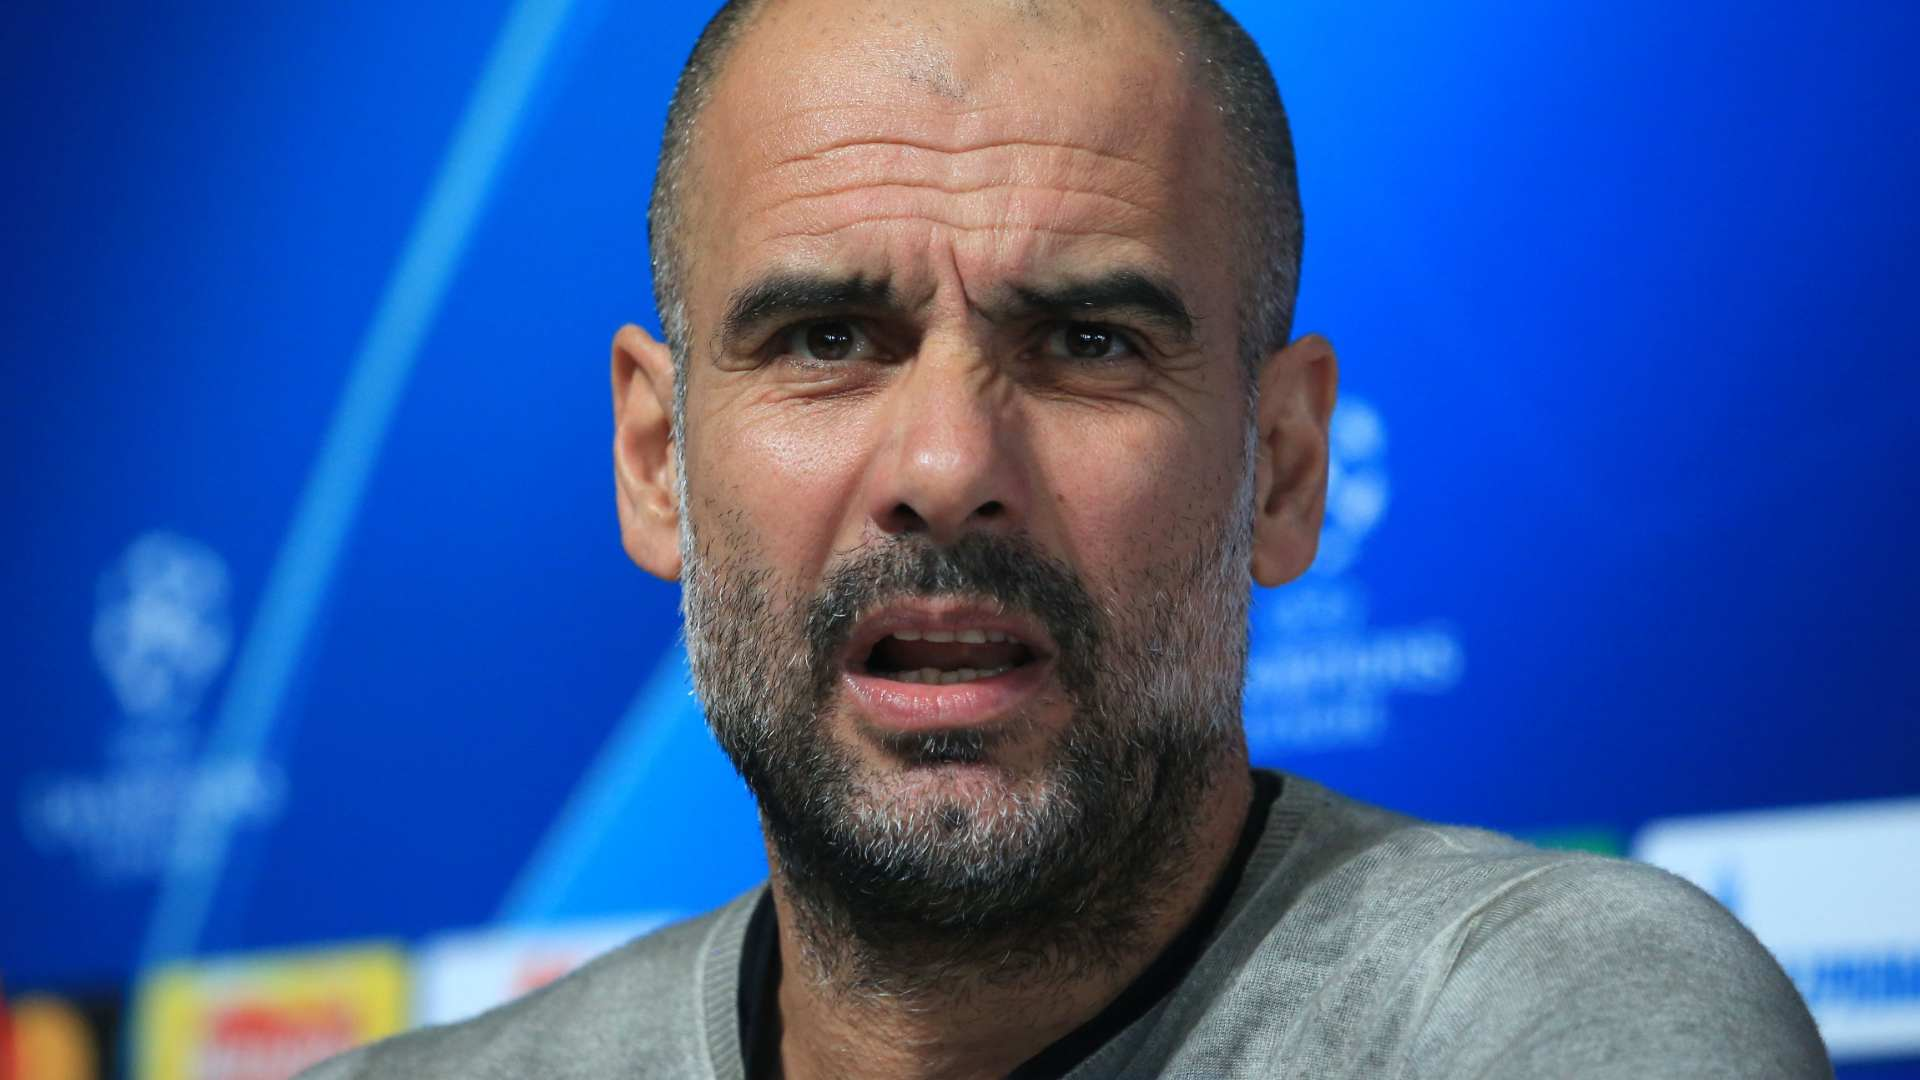 https://images.performgroup.com/di/library/GOAL/a4/ba/2019-04-16-josep-guardiola_1qc2bvl1txfg018cwakg1yhvh7.jpg